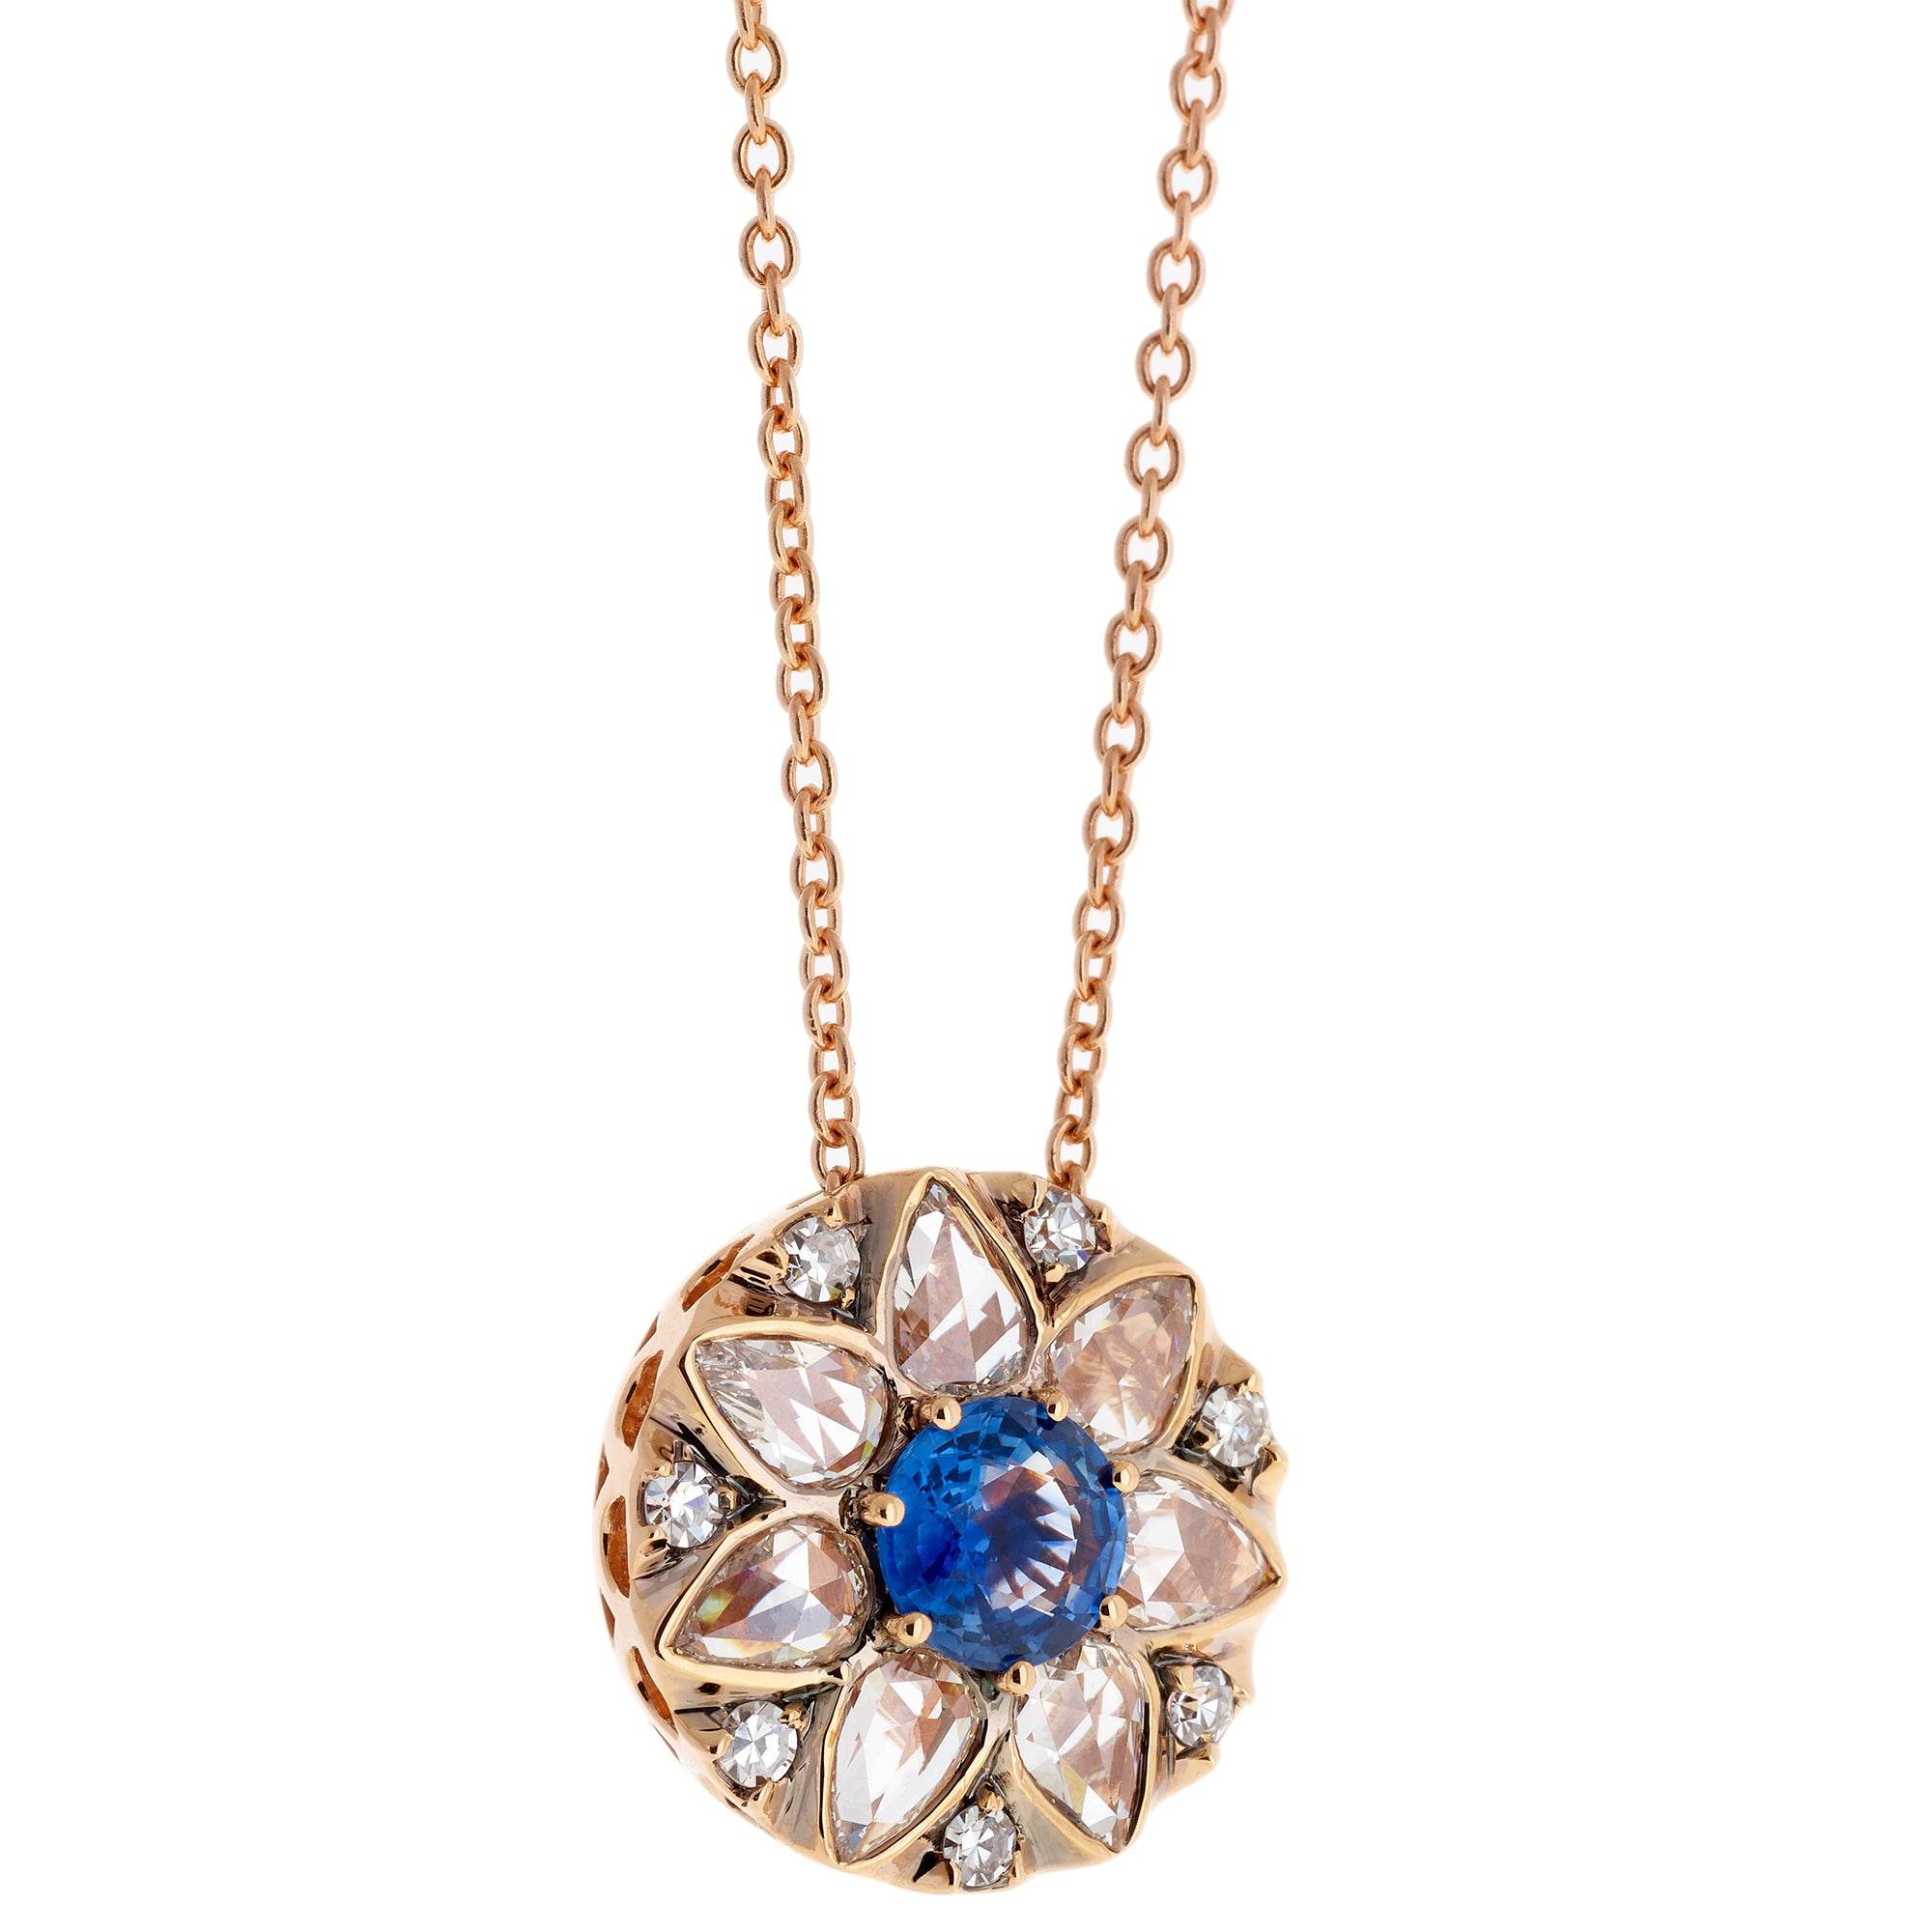 Diamond & Blue Sapphire Necklace by Selim Mouzannar for Broken English Jewelry